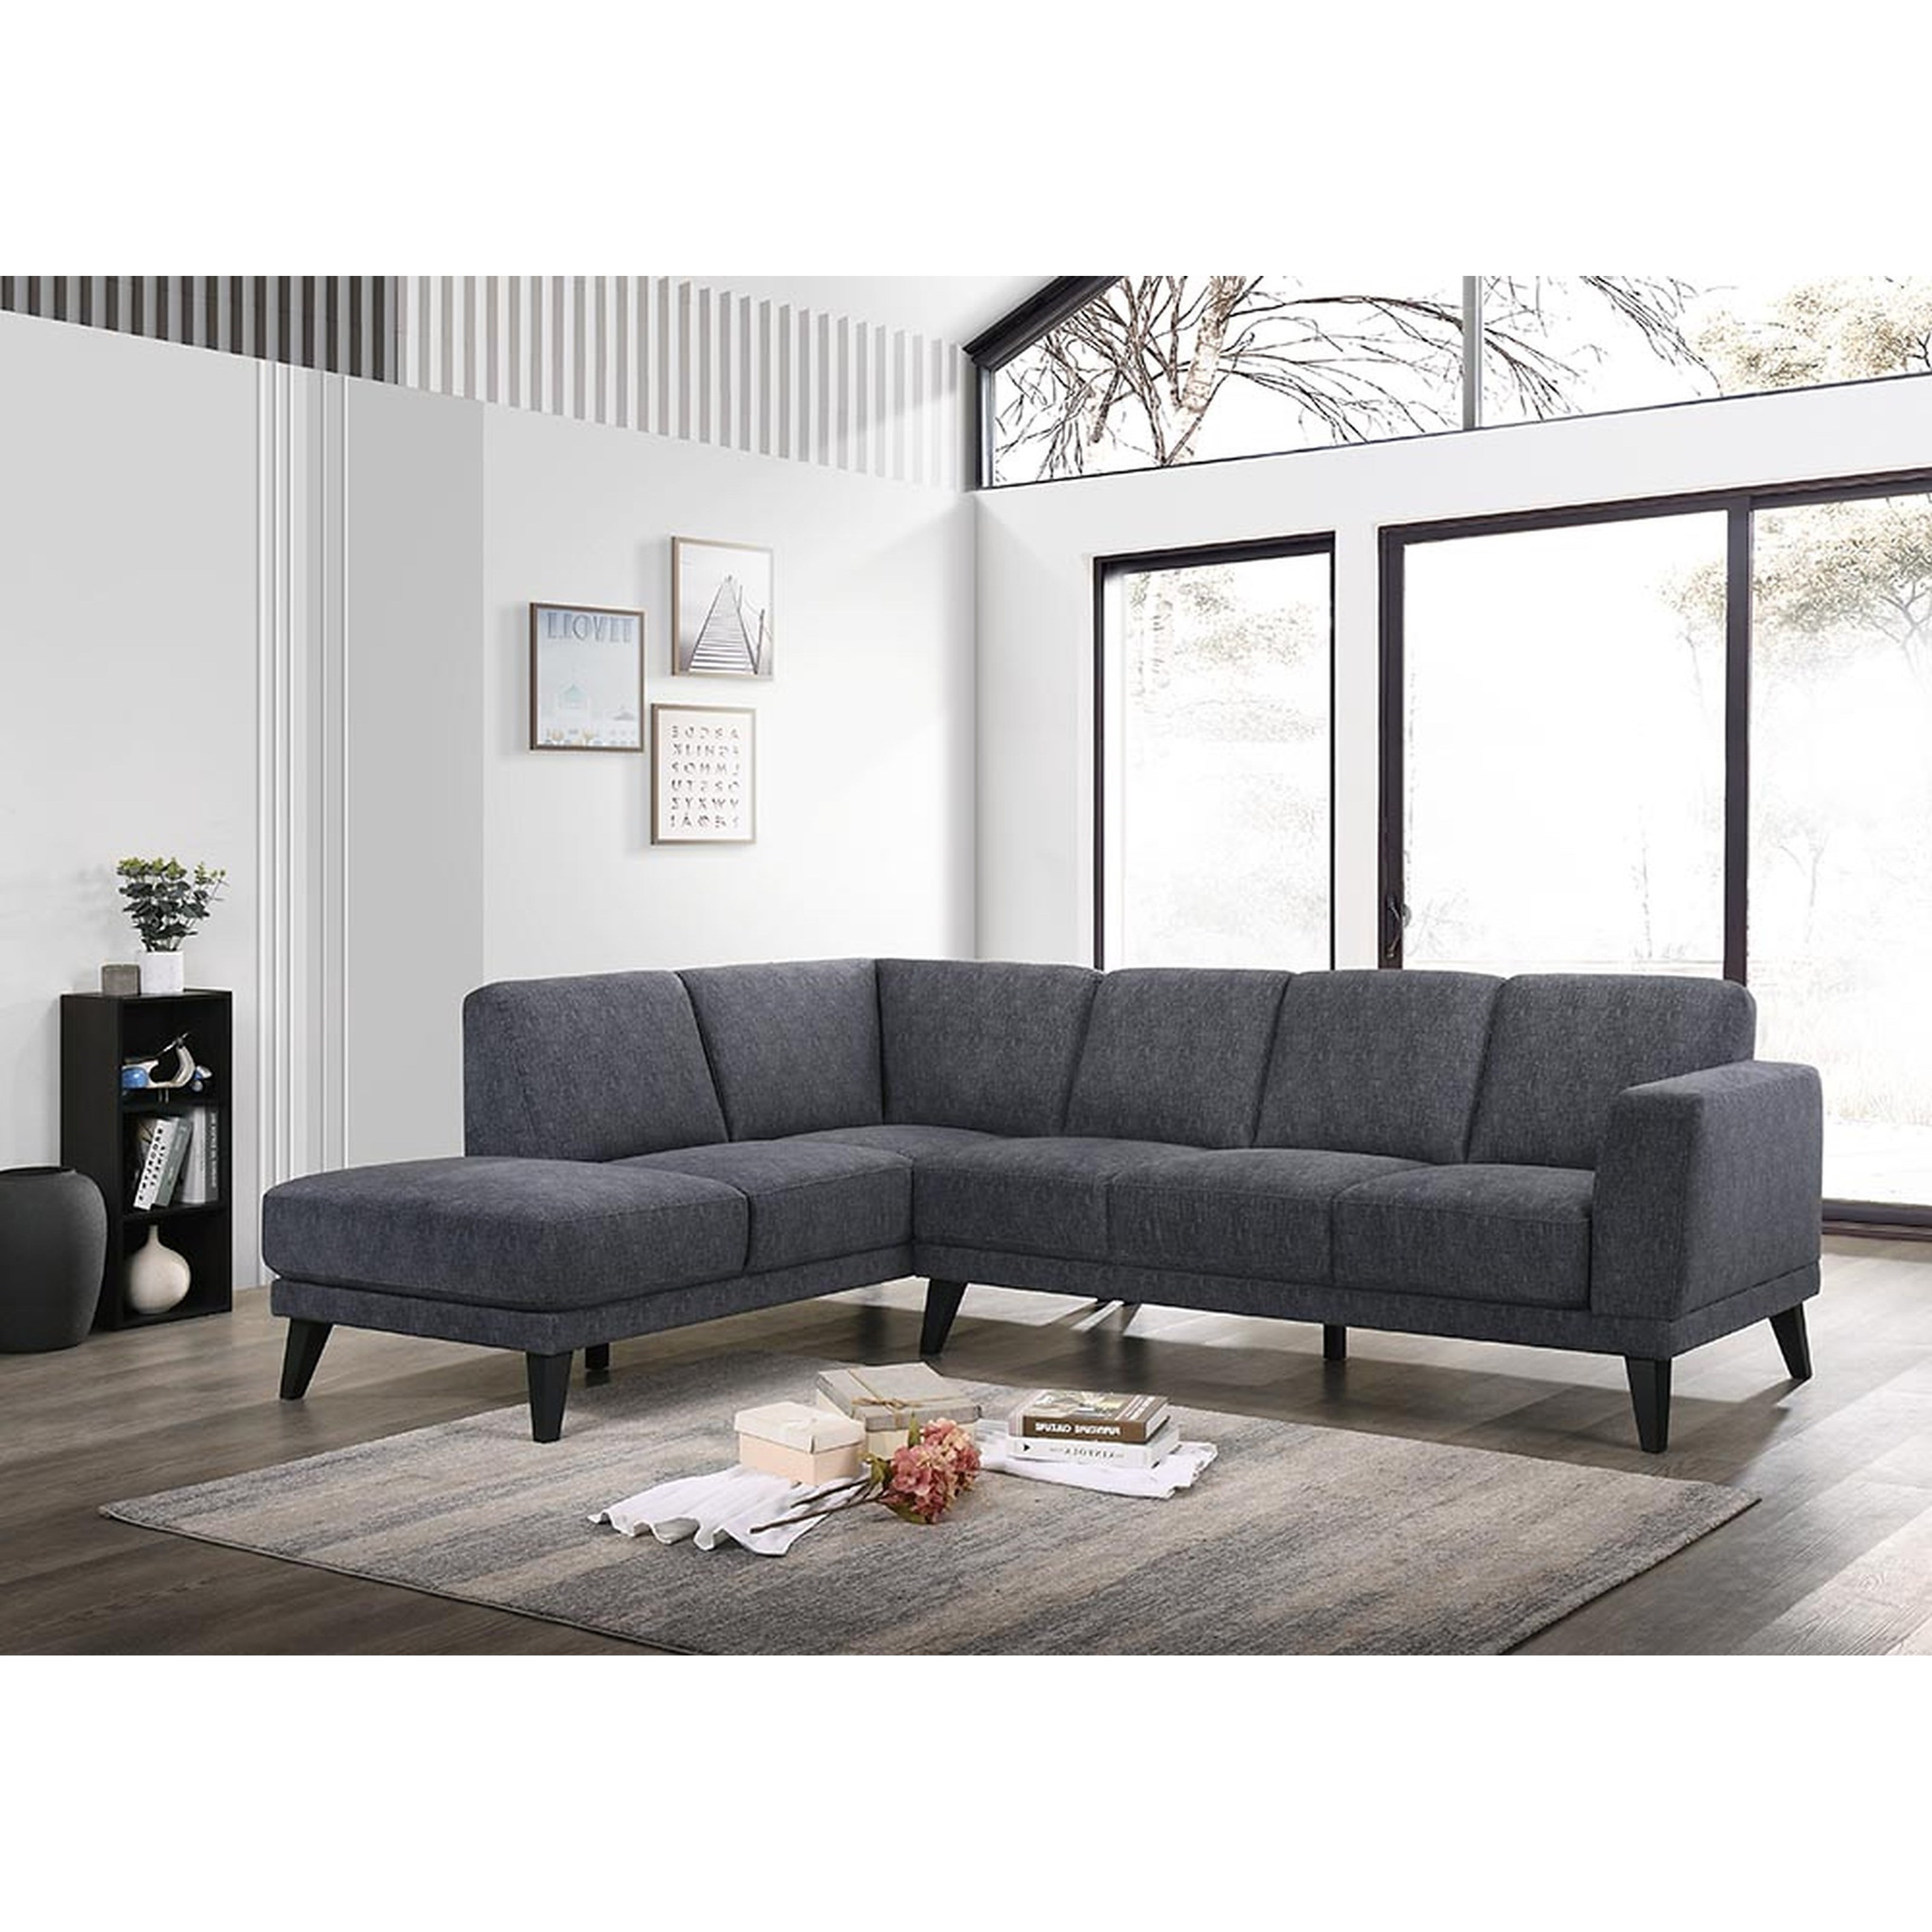 Altamura 5-Seat Sectional w/ LAF Chaise by New Classic at Carolina Direct